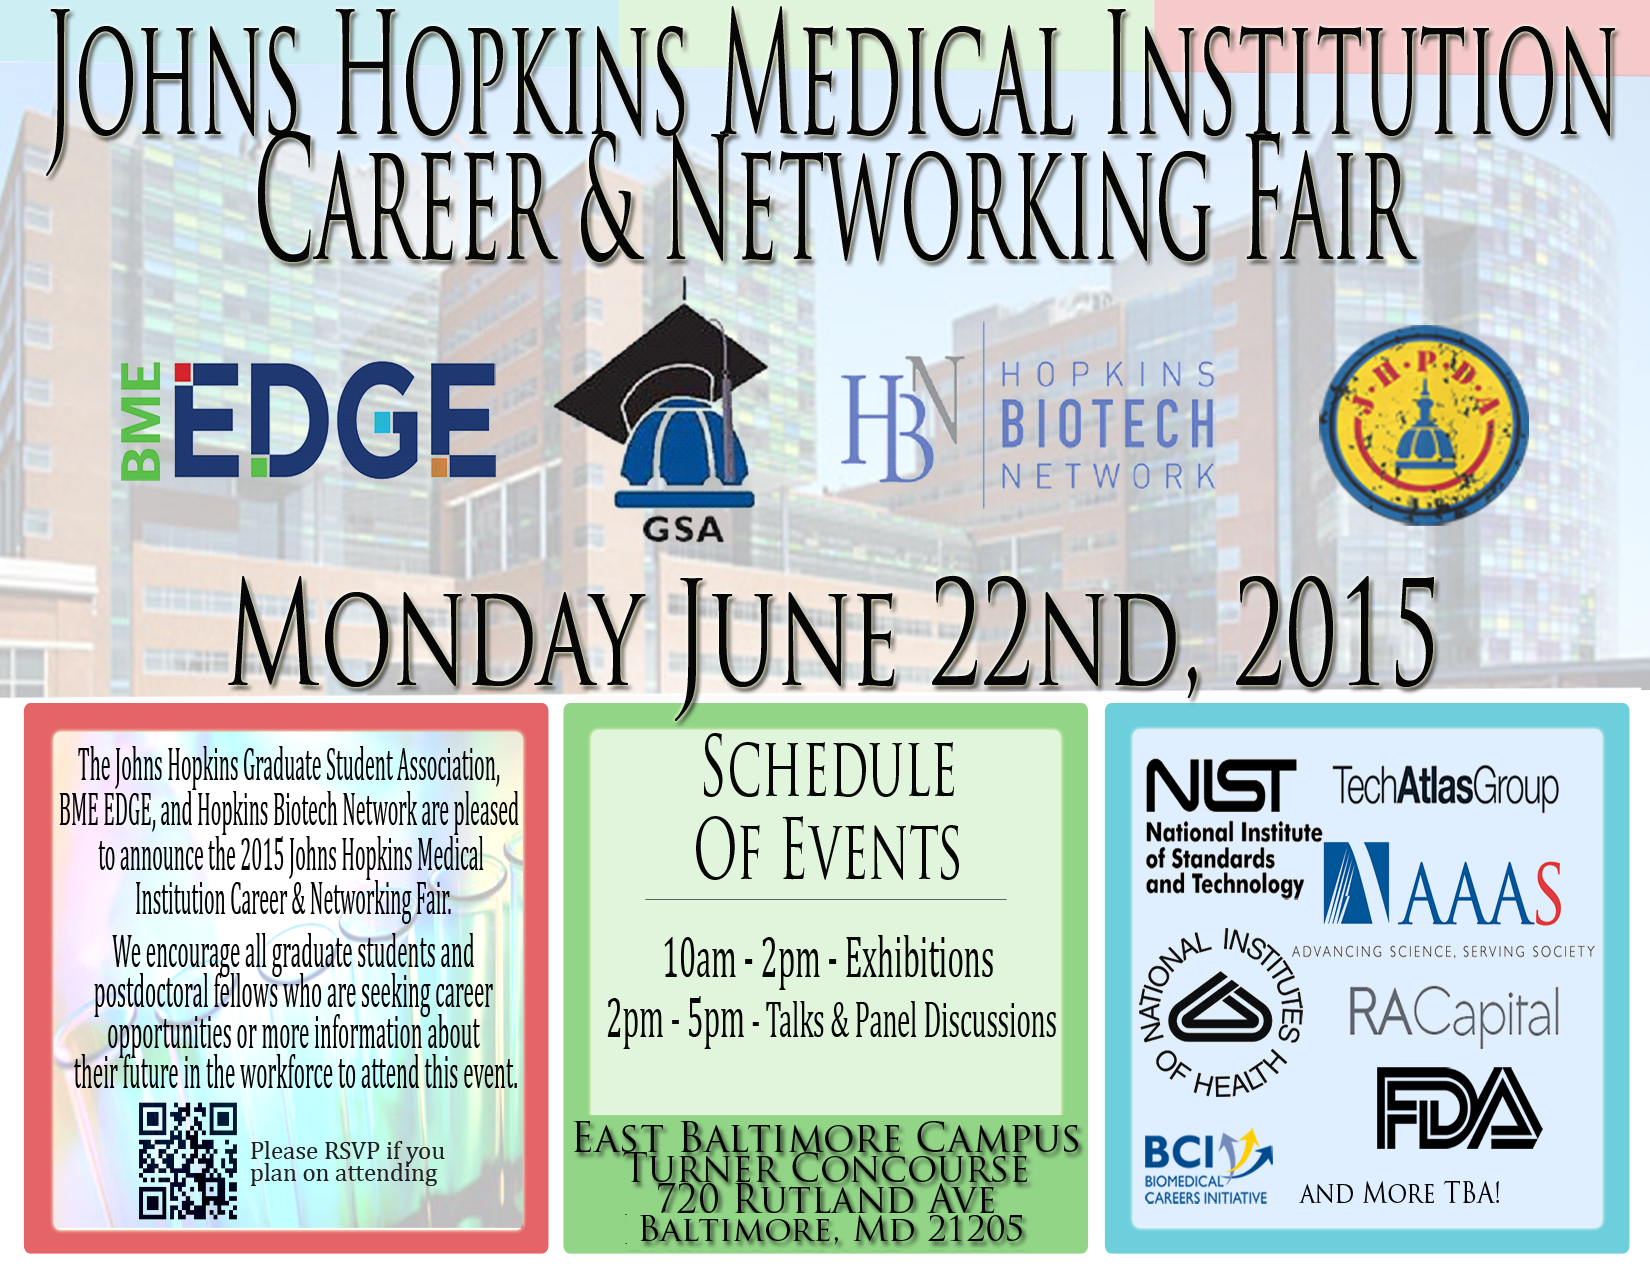 Networking Fair - HBN post image